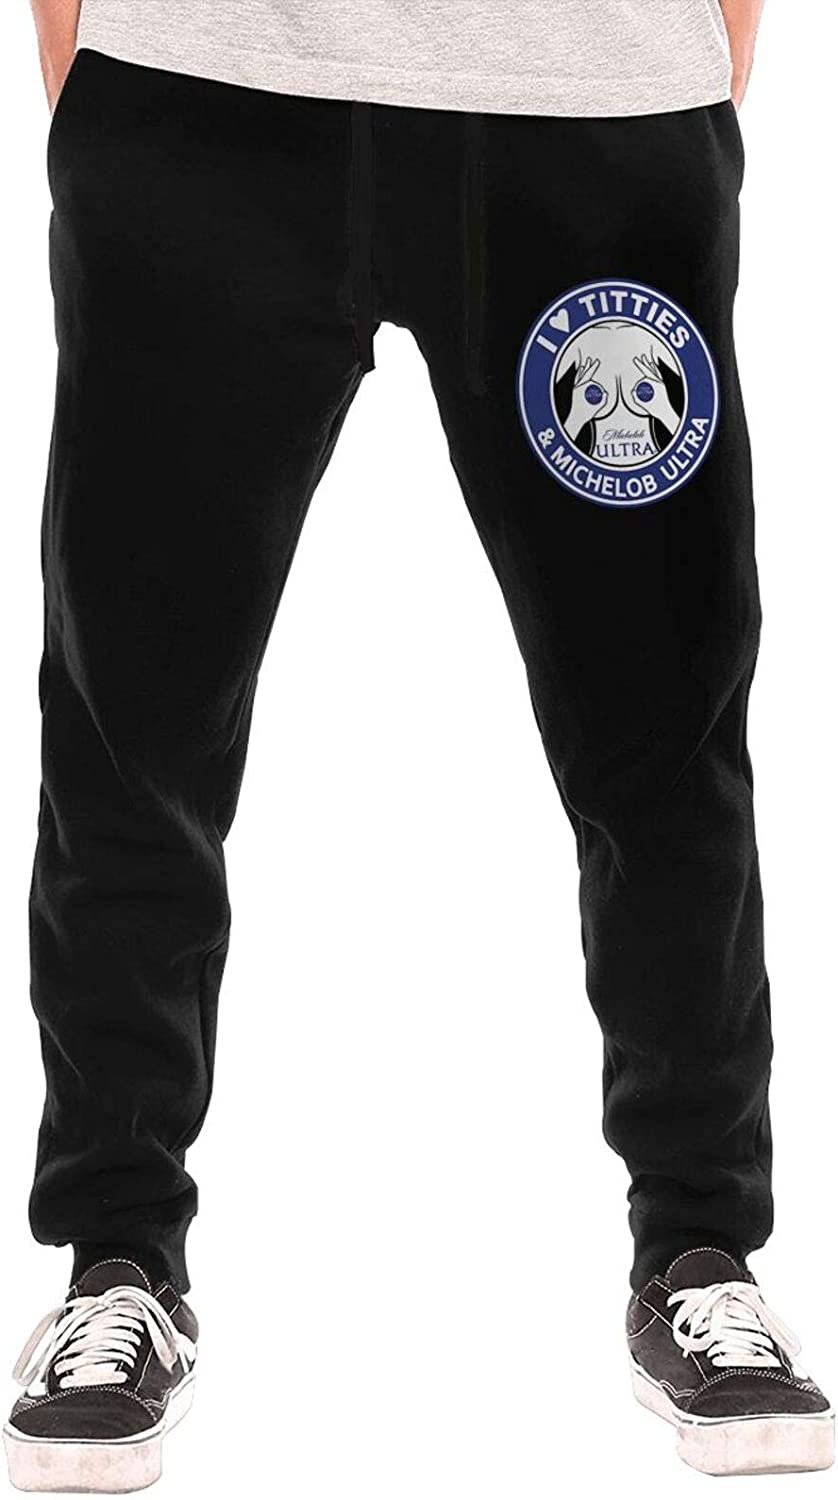 I Love Ti-Tties and Mi-Che-Lob Ultra Men's Fashion Long Pr Miami Mall Pants We OFFer at cheap prices